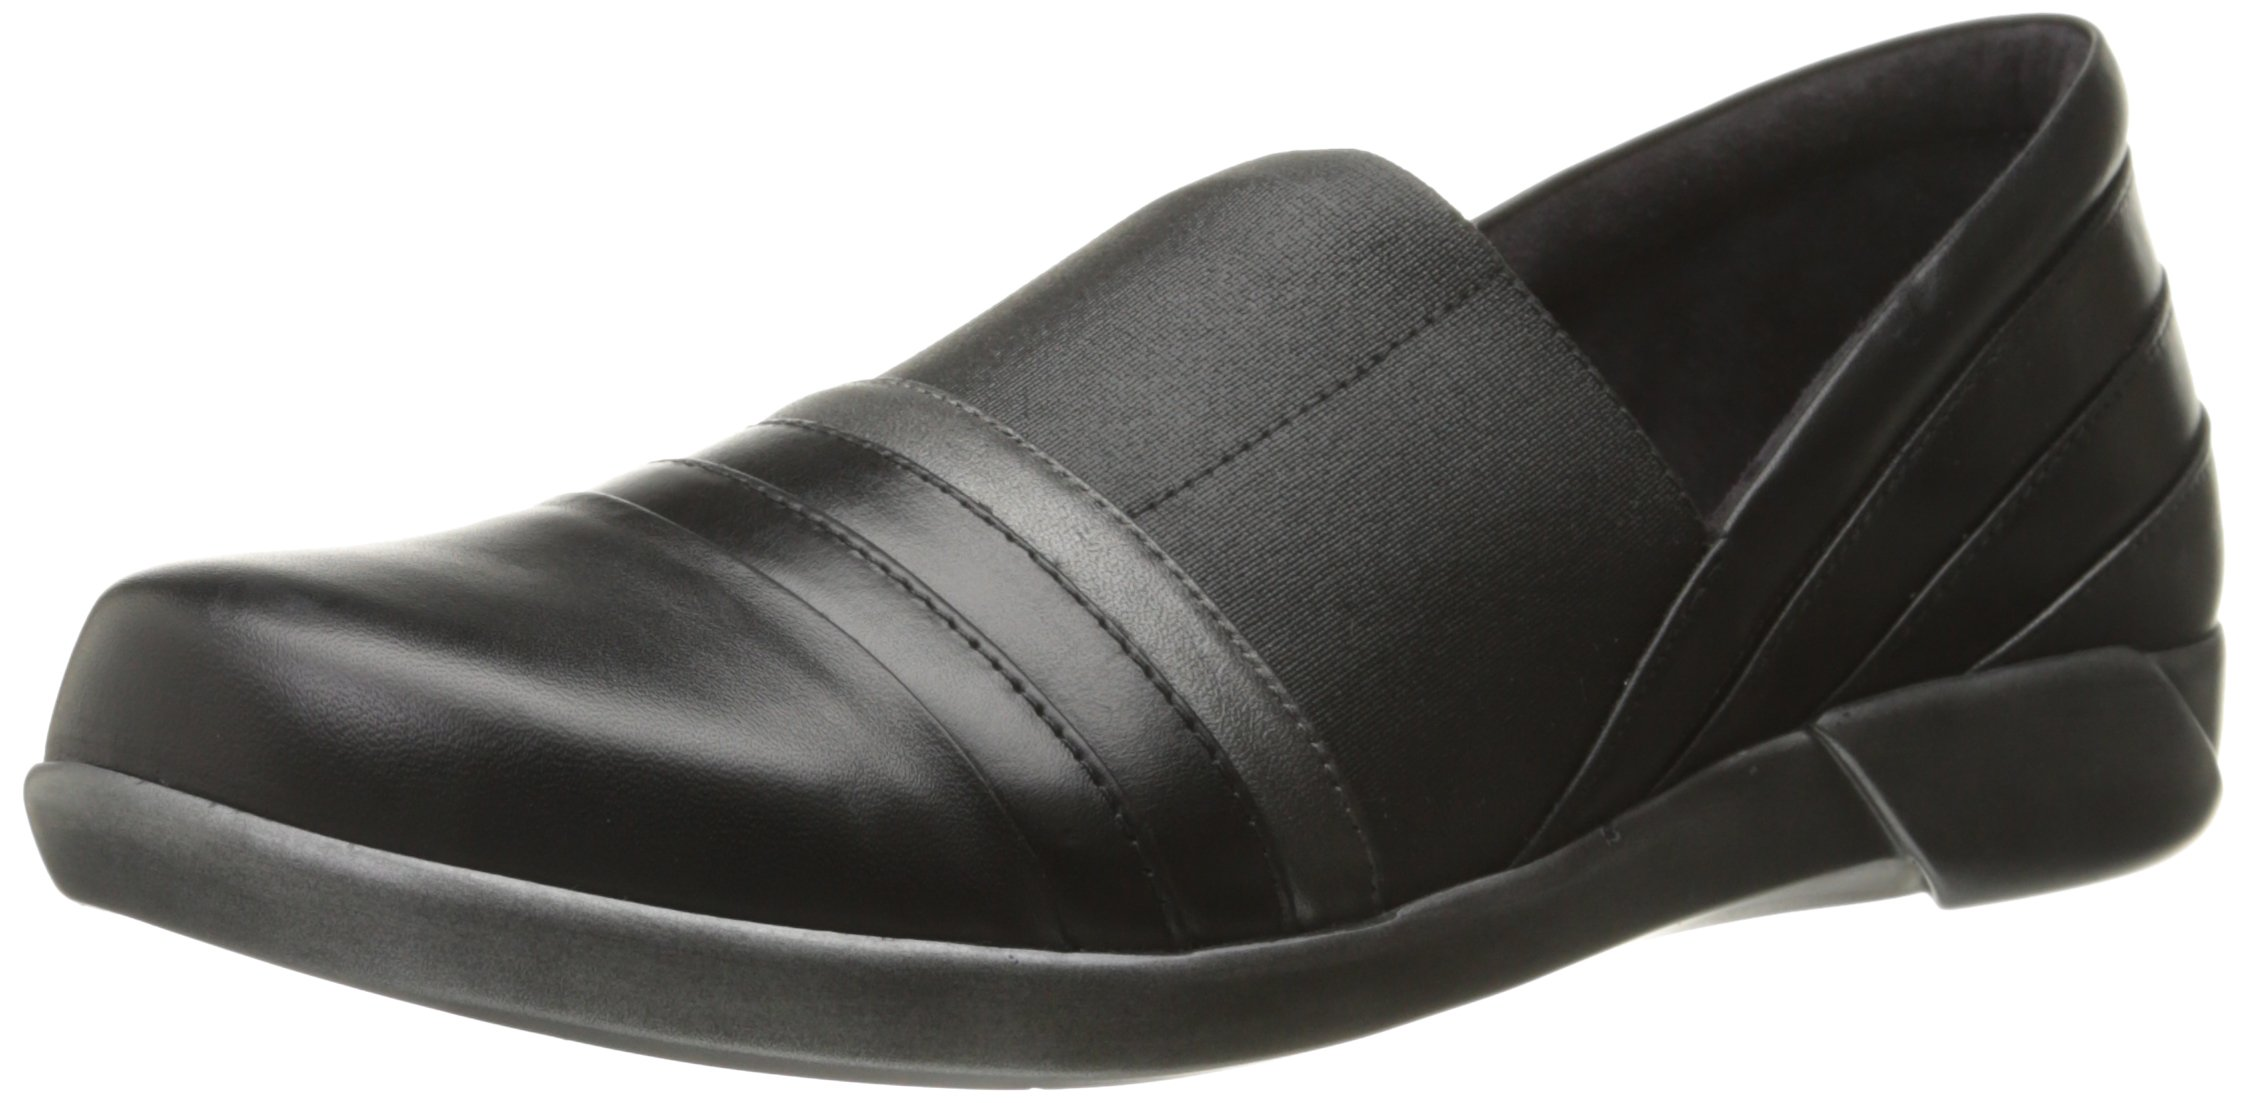 Naot Women's Nina Flat, Black Raven Leather/Black Madras Leather/Metallic Road Leather, 38 EU/6.5-7 M US